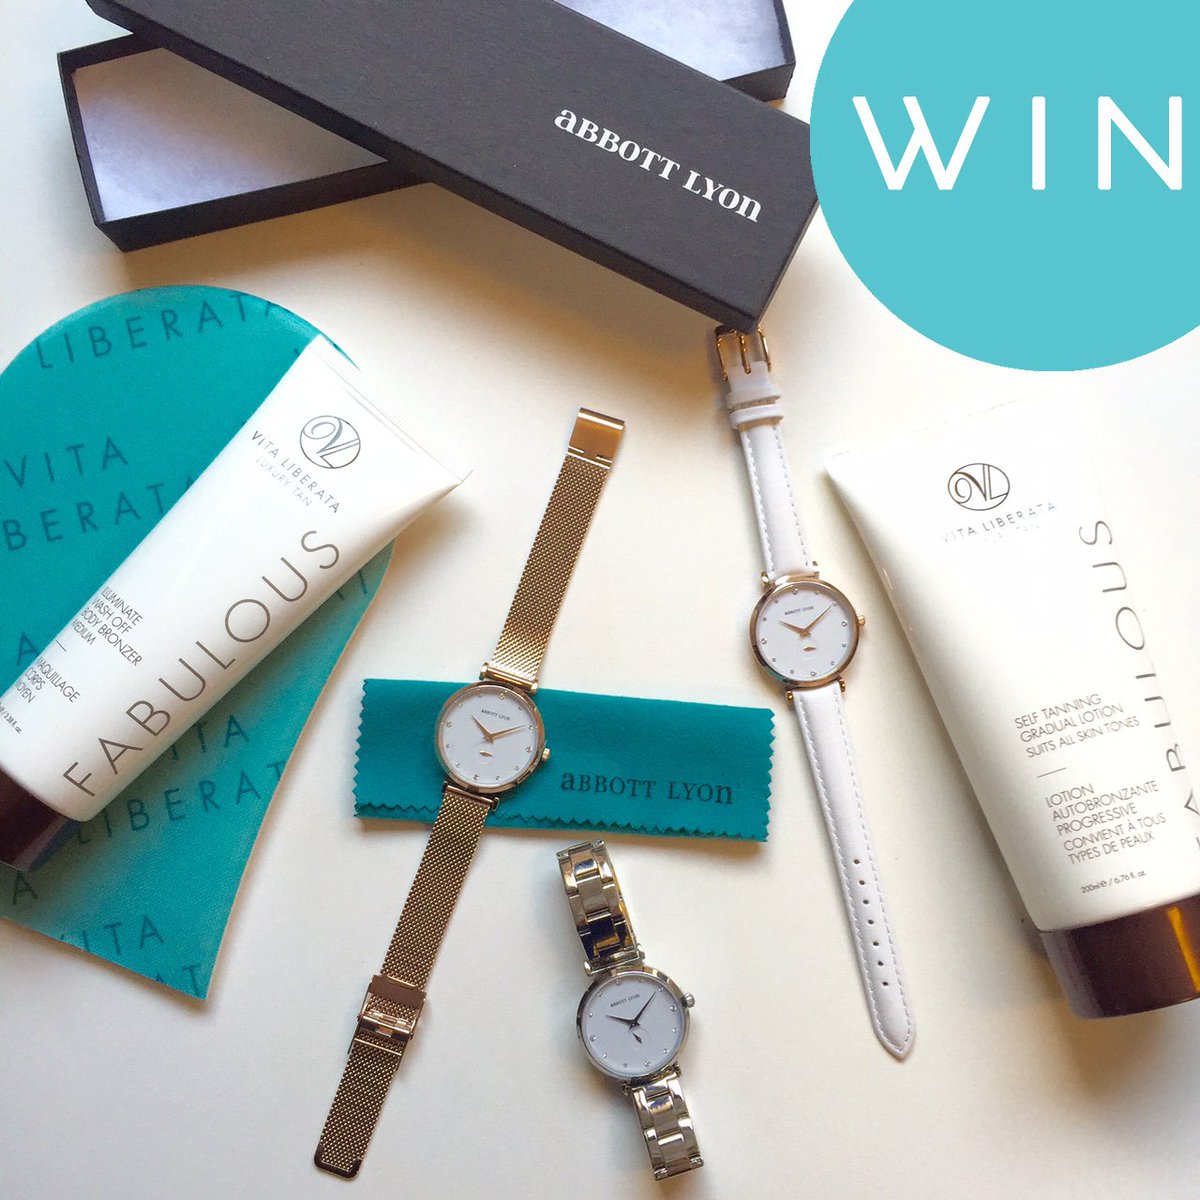 #Win a gorgeous @AbbottLyon watch & #VitaLiberata goodies in our exclusive giveaway! RT & Follow to enter! Ends13/03 https://t.co/DmZ3WS7F76